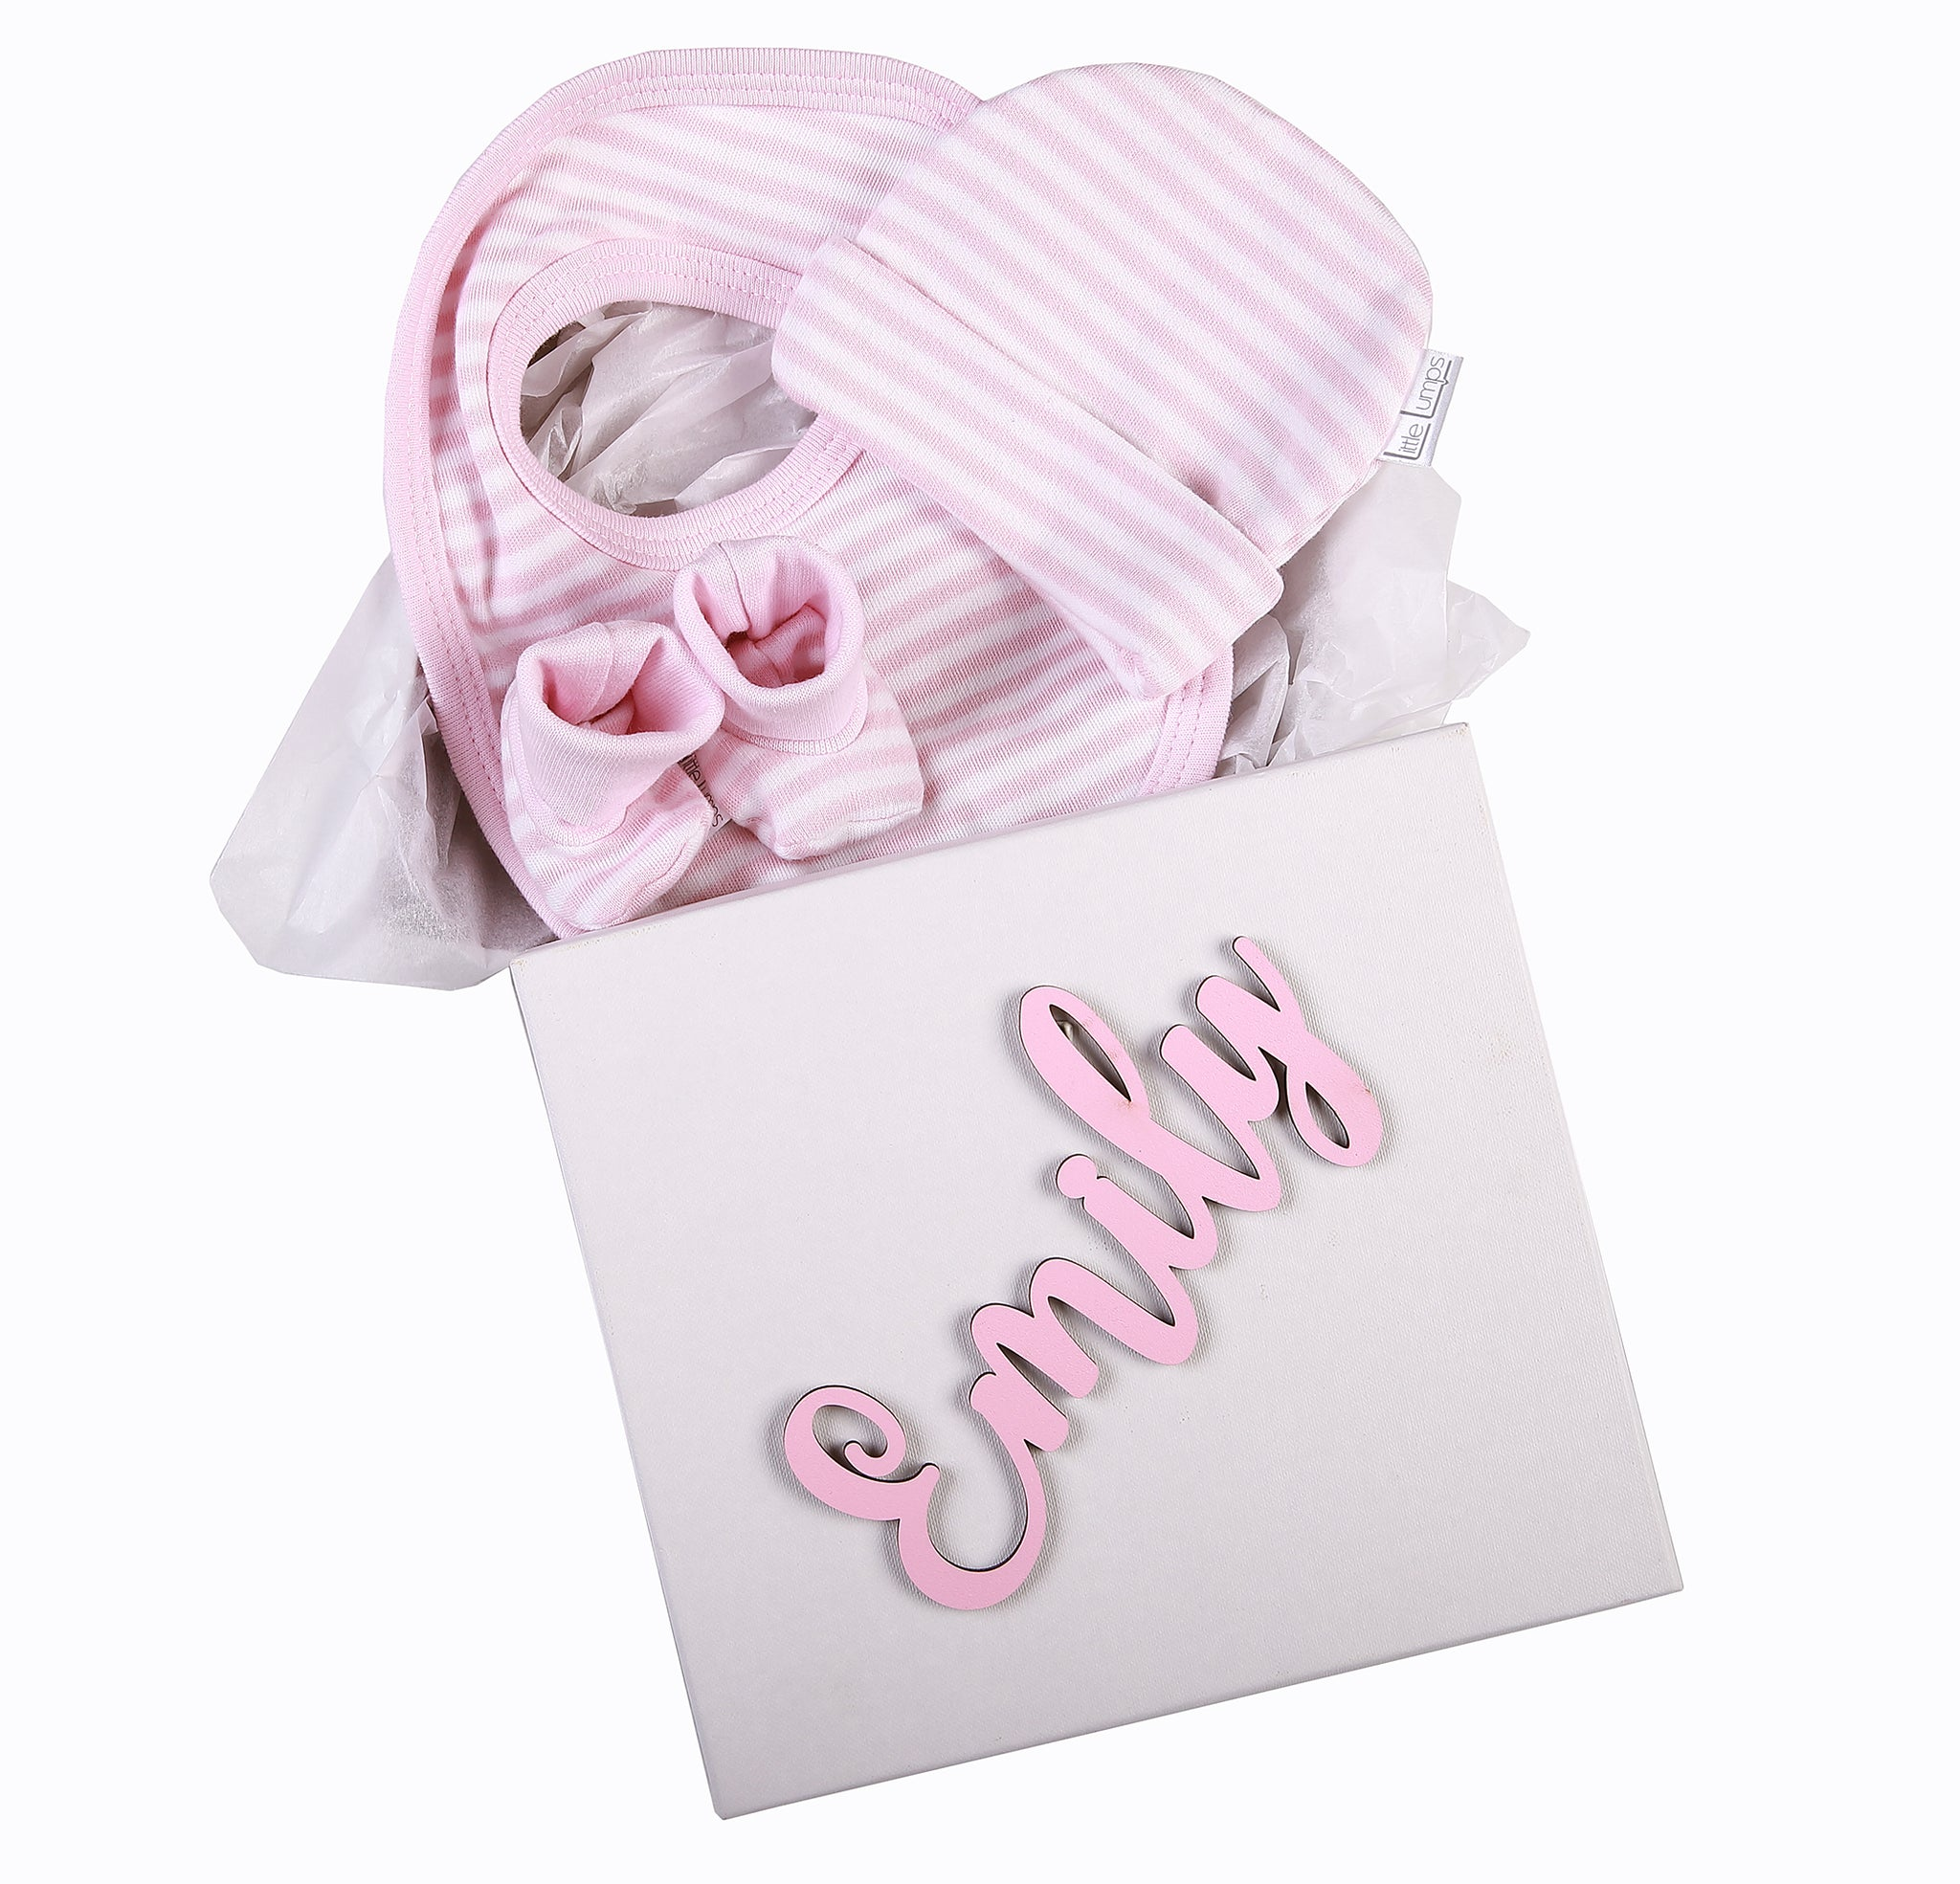 Baby Gift Set 2 - Personalised Box with hat,bib and booties - Little Lumps